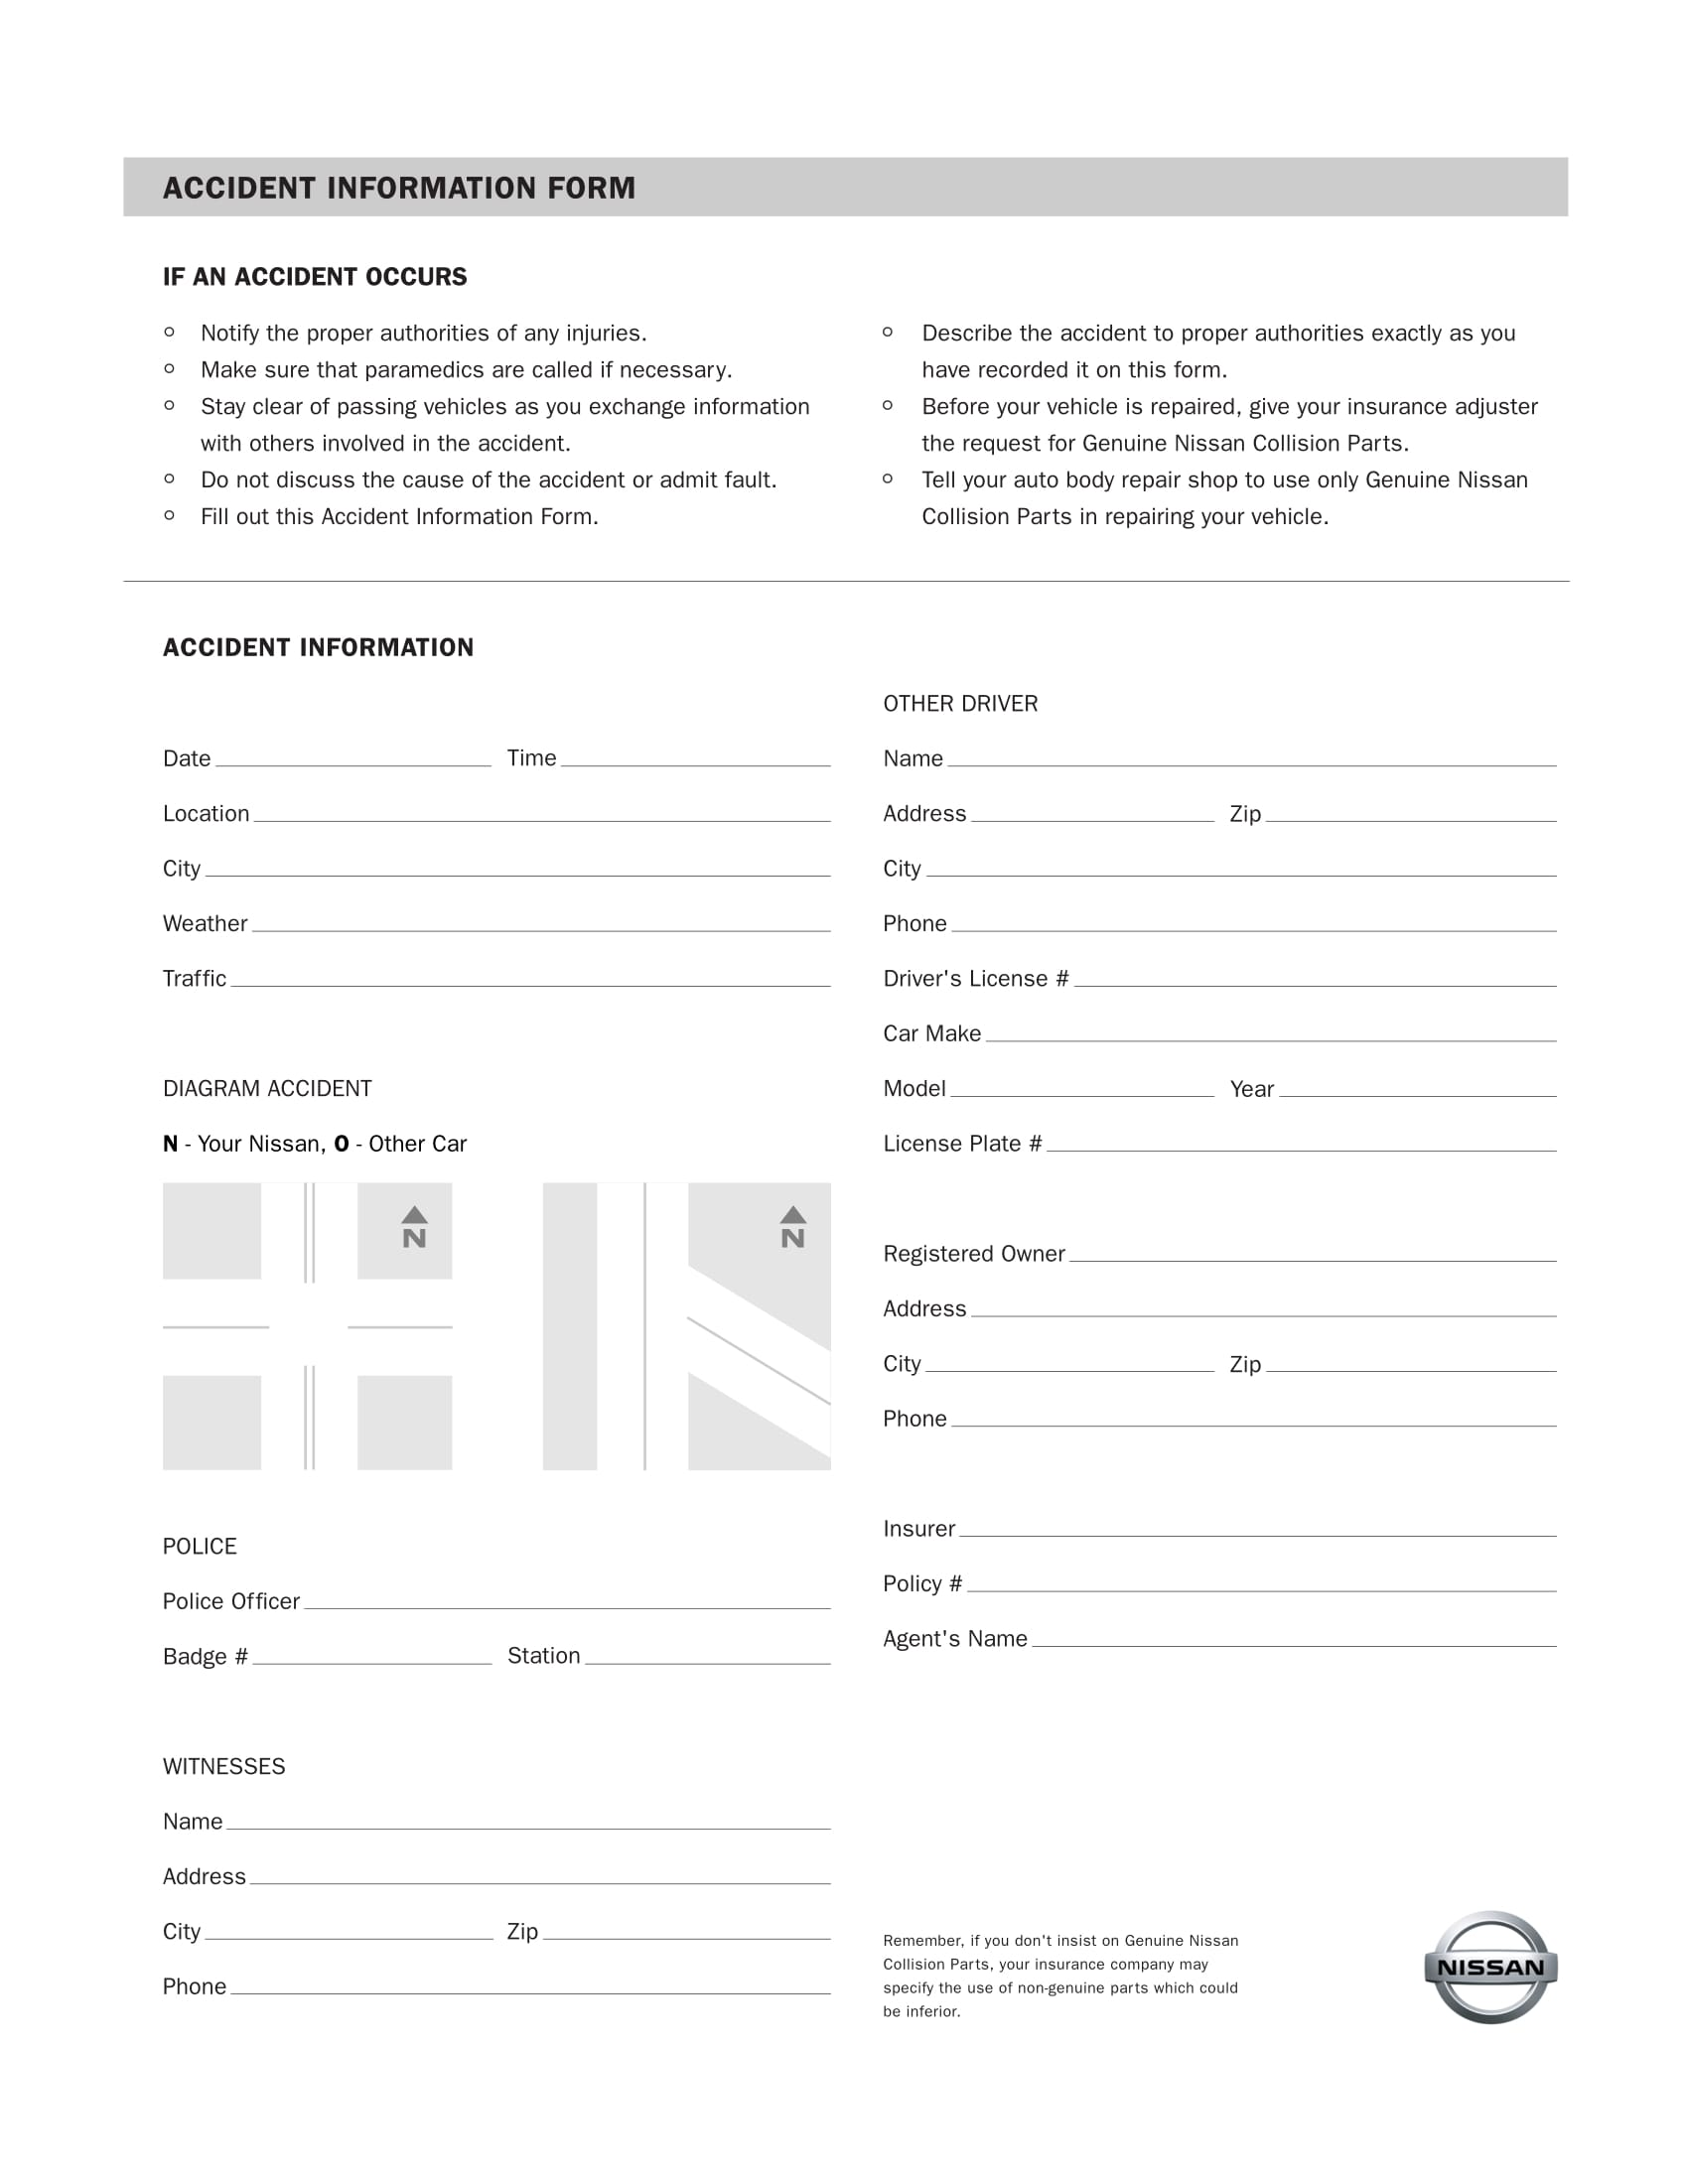 traffic collision accident information form 1